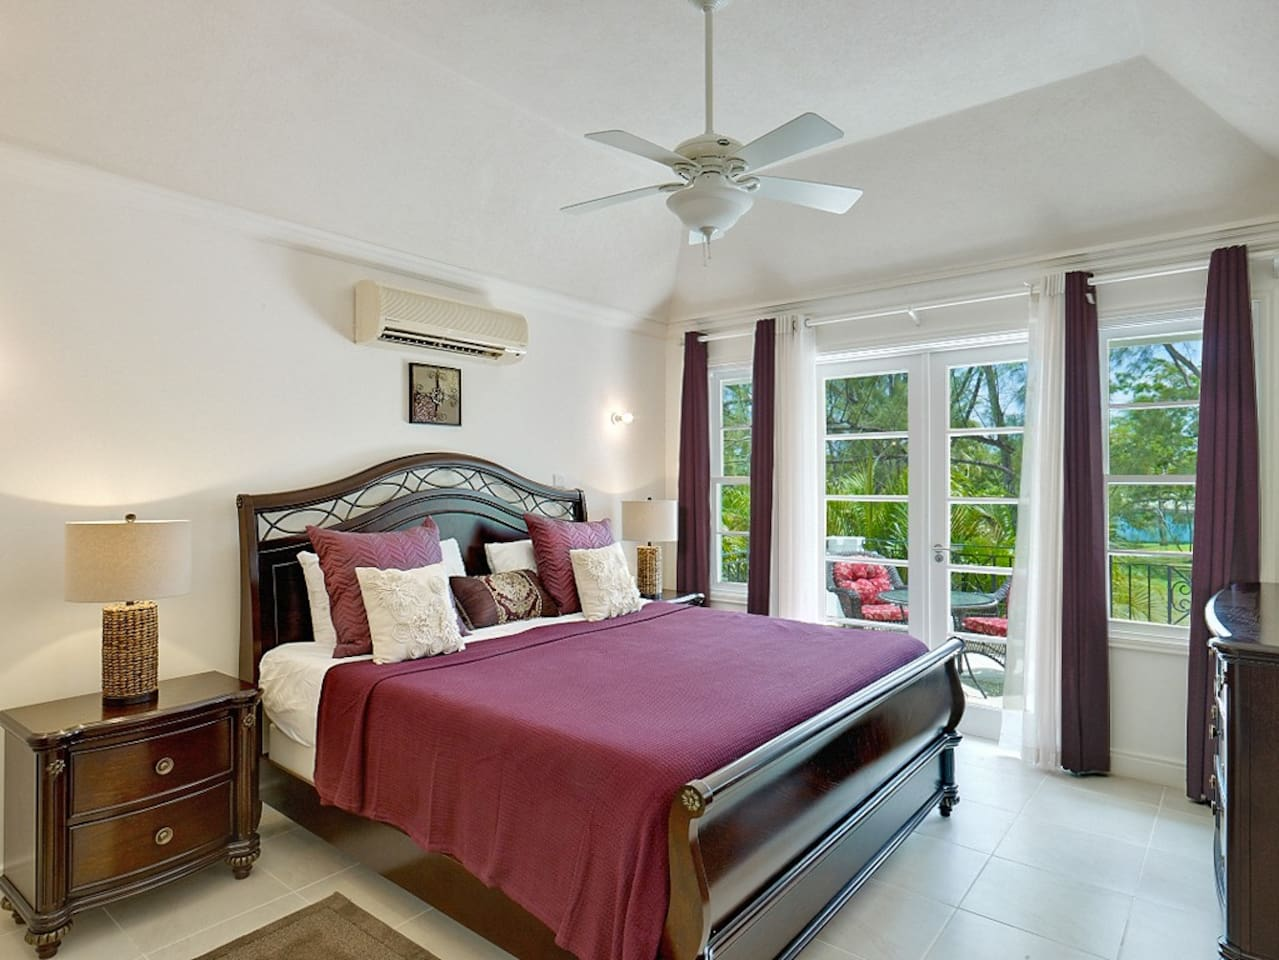 The spacious master bedroom, with a king bed, A/C, walk-in closet, en-suite bathroom and private terrace